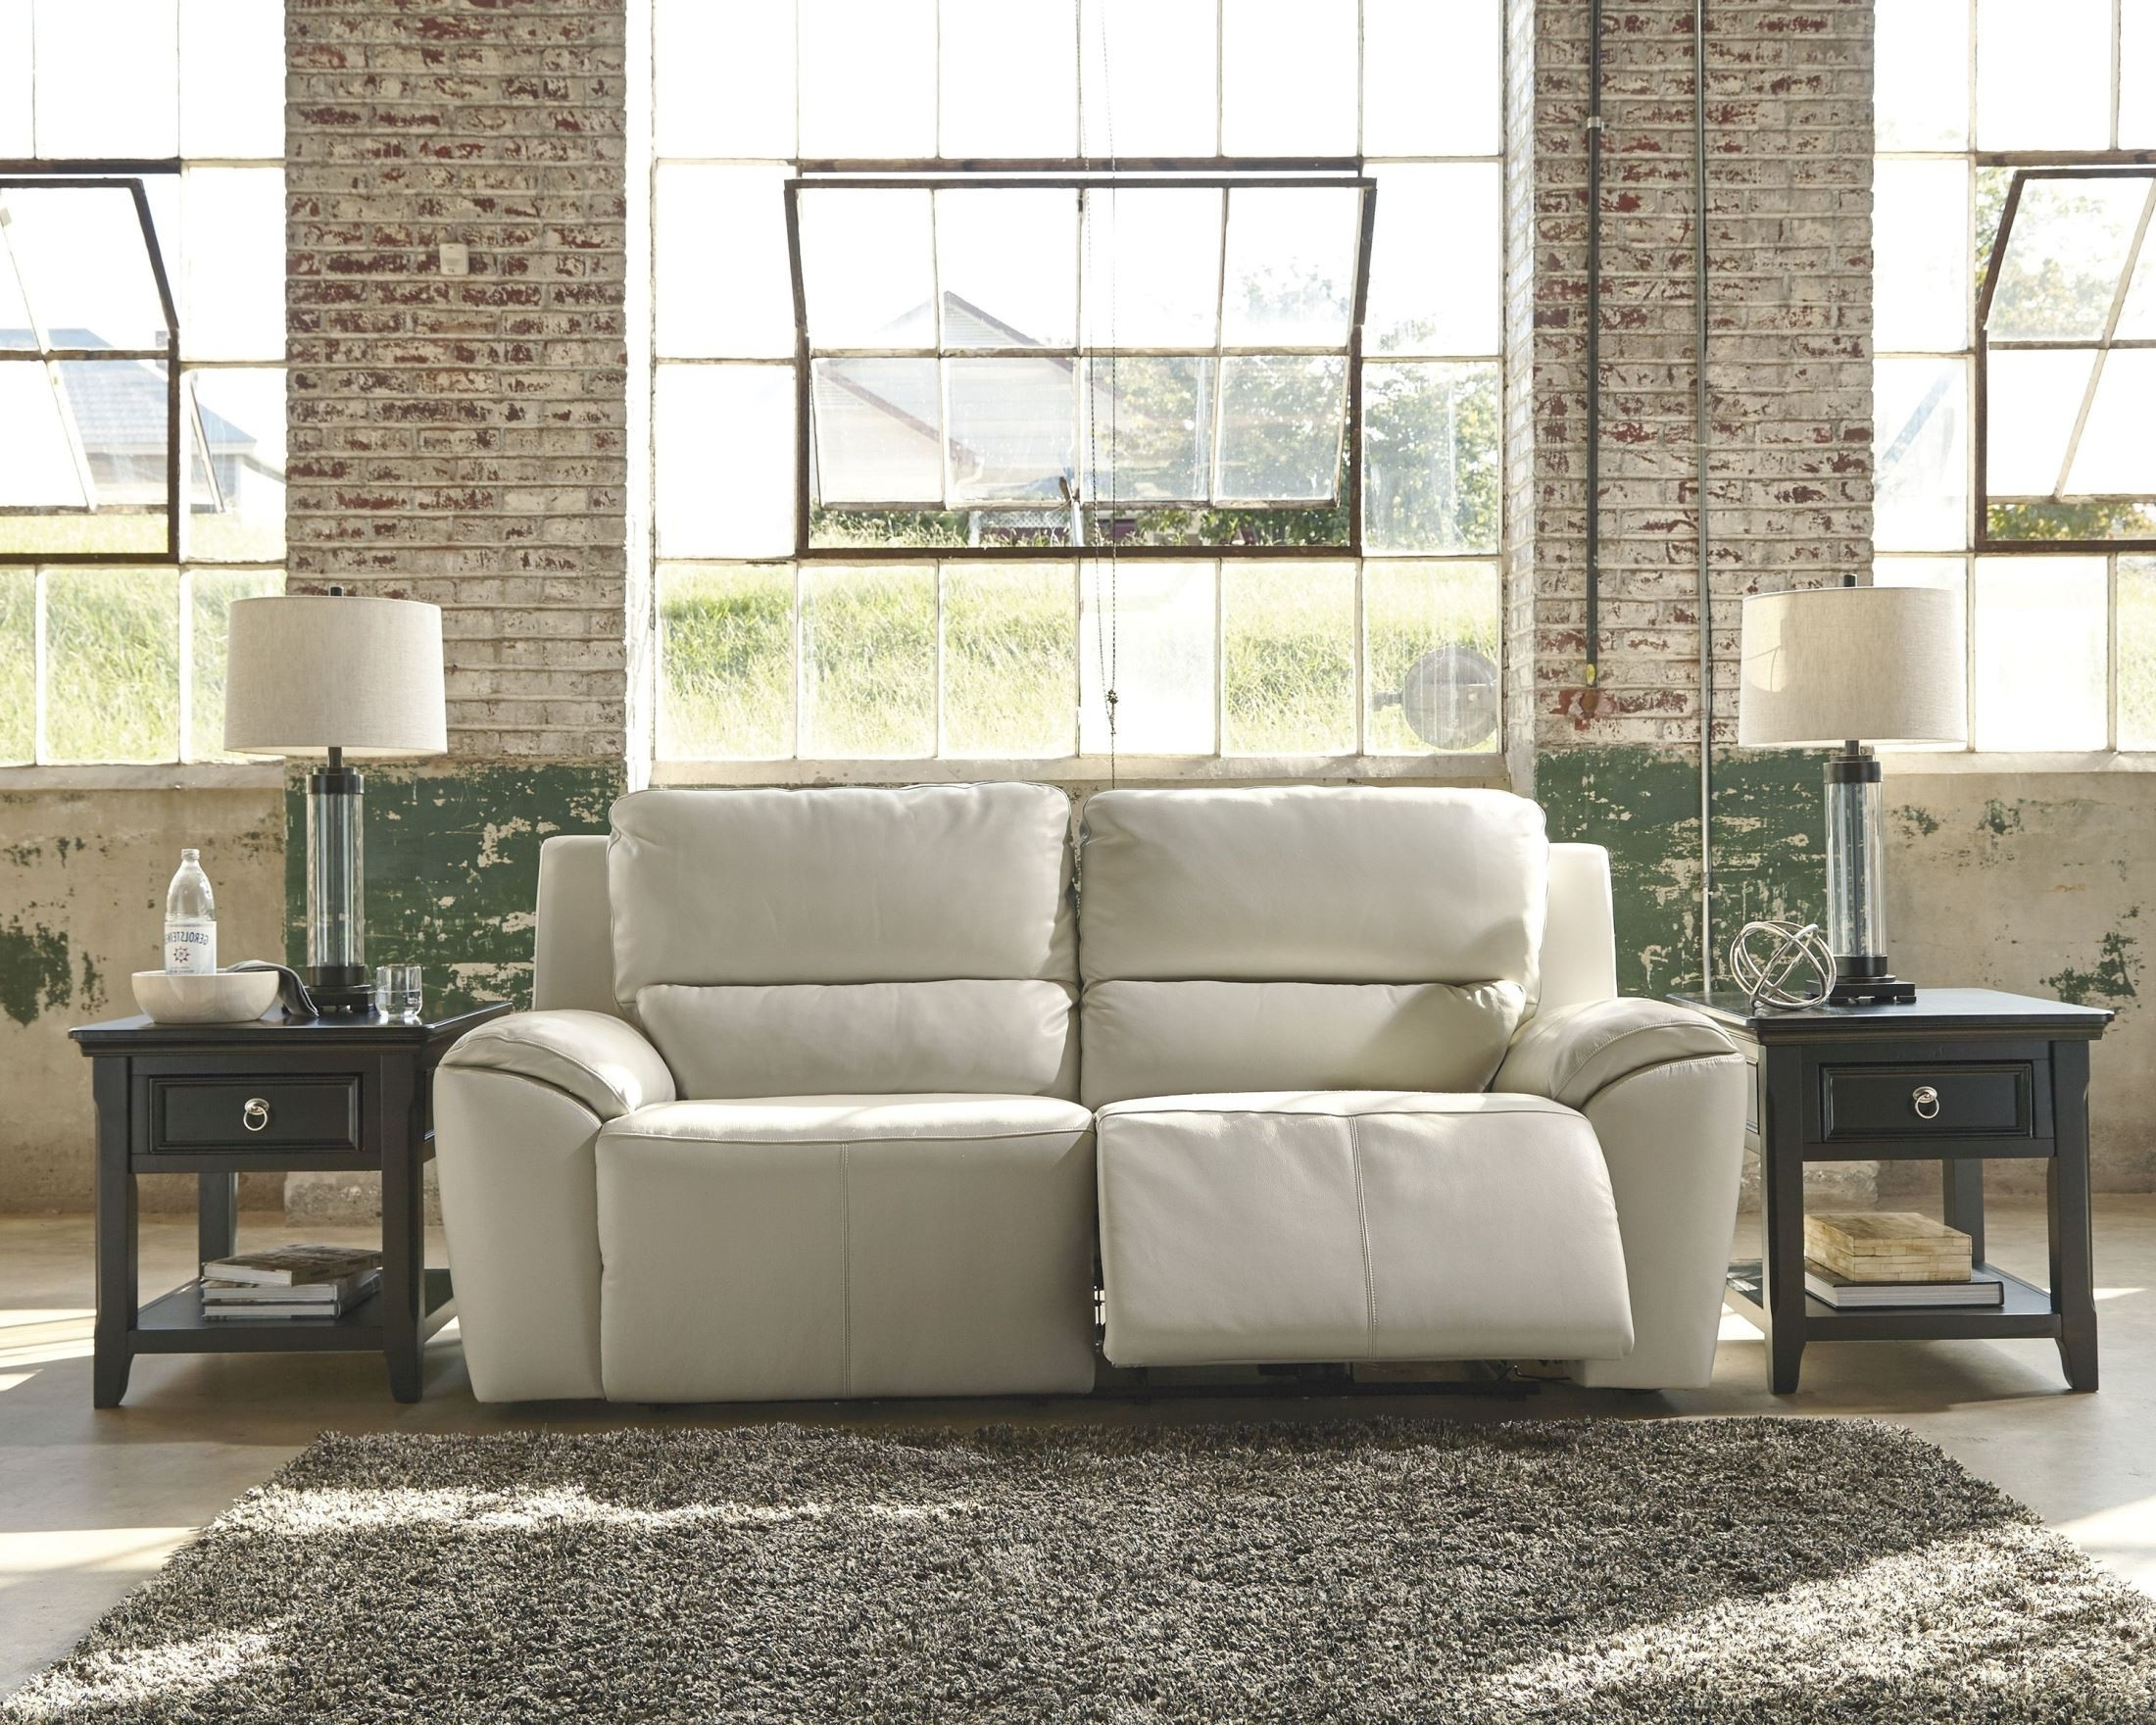 Favorite Valeton Cream 2 Seat Power Reclining Sofa From Ashley (u7350047 Throughout 2 Seat Recliner Sofas (View 15 of 20)